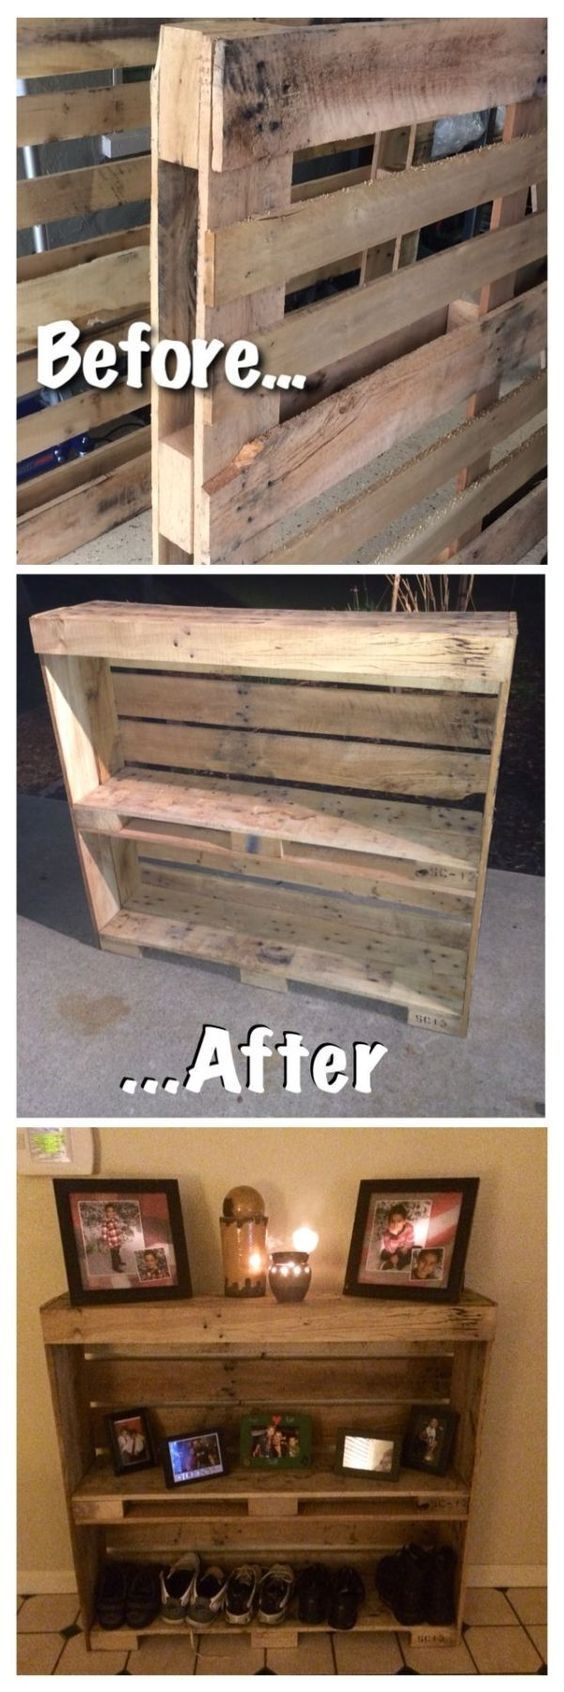 Best 25+ Pallet decorations ideas on Pinterest | Pallet crafts ...